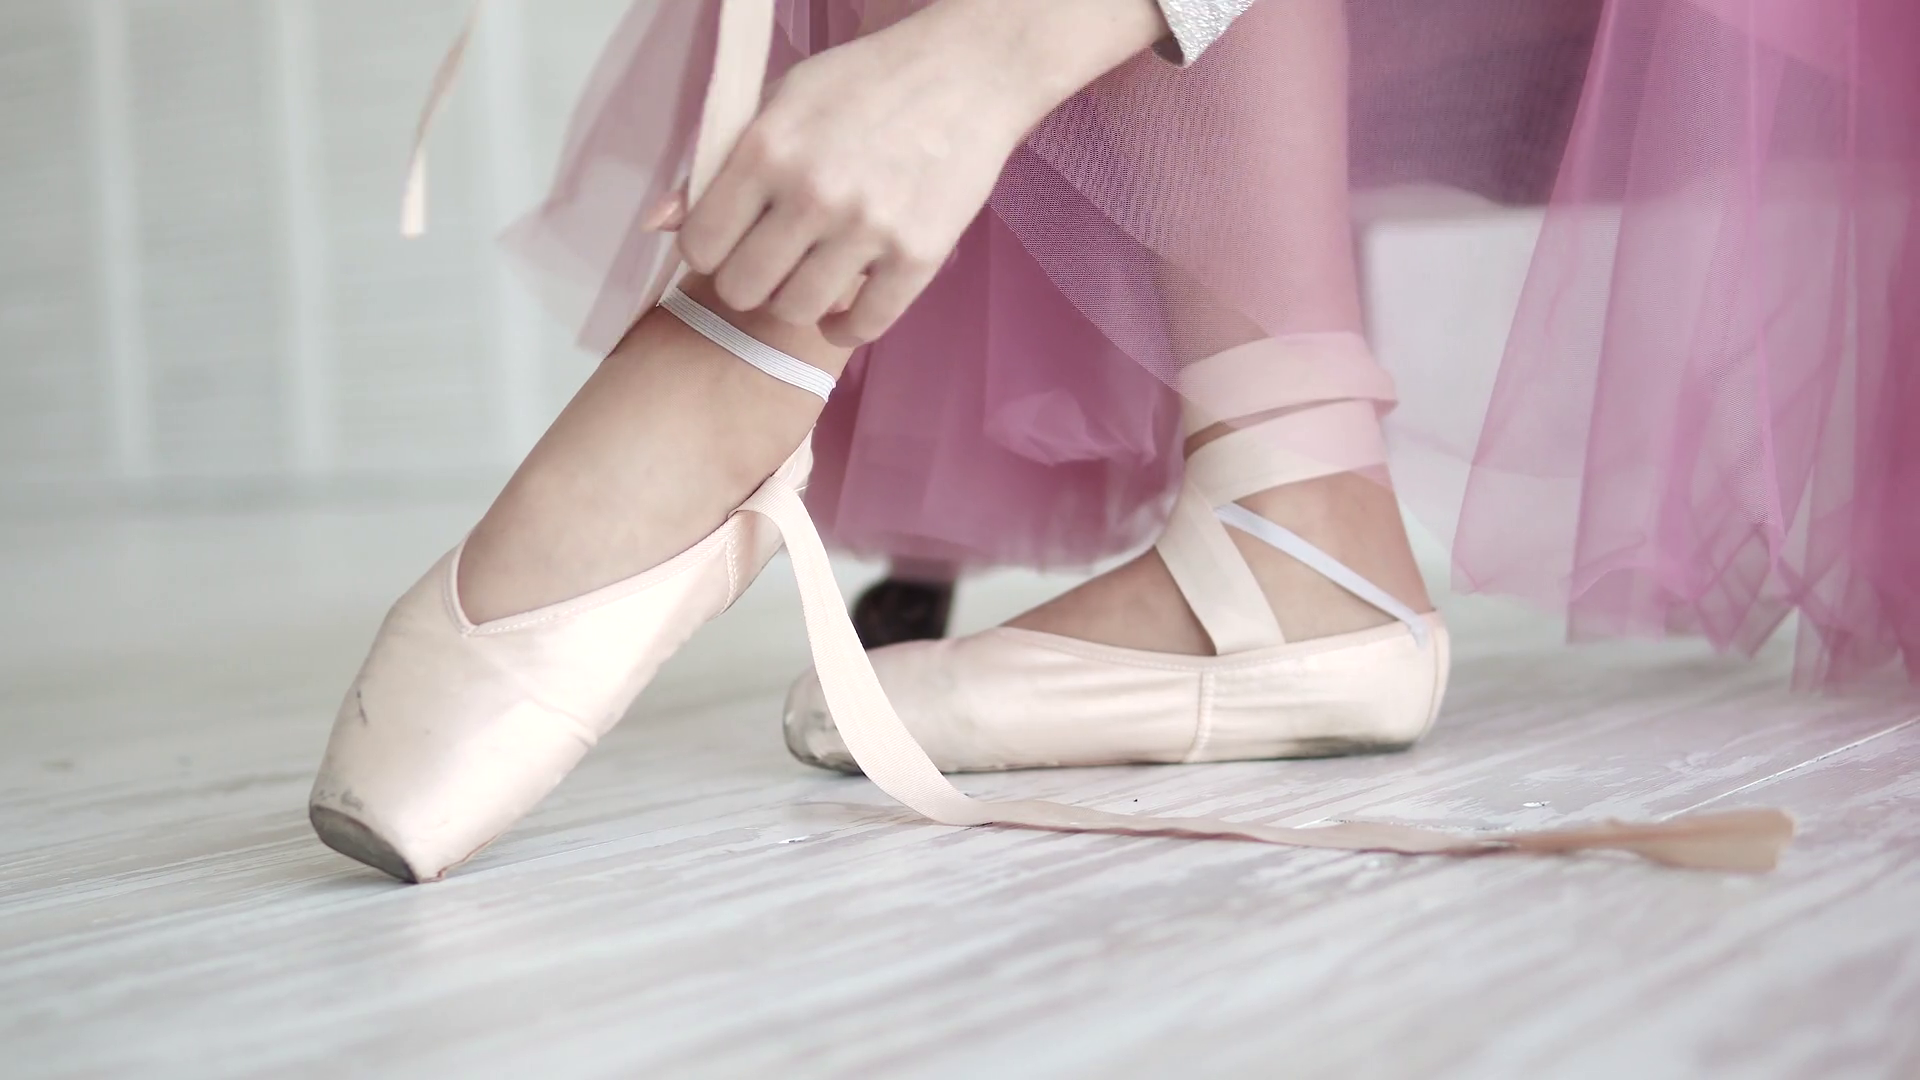 Pointe Shoes Wallpapers - Top Free Pointe Shoes ...